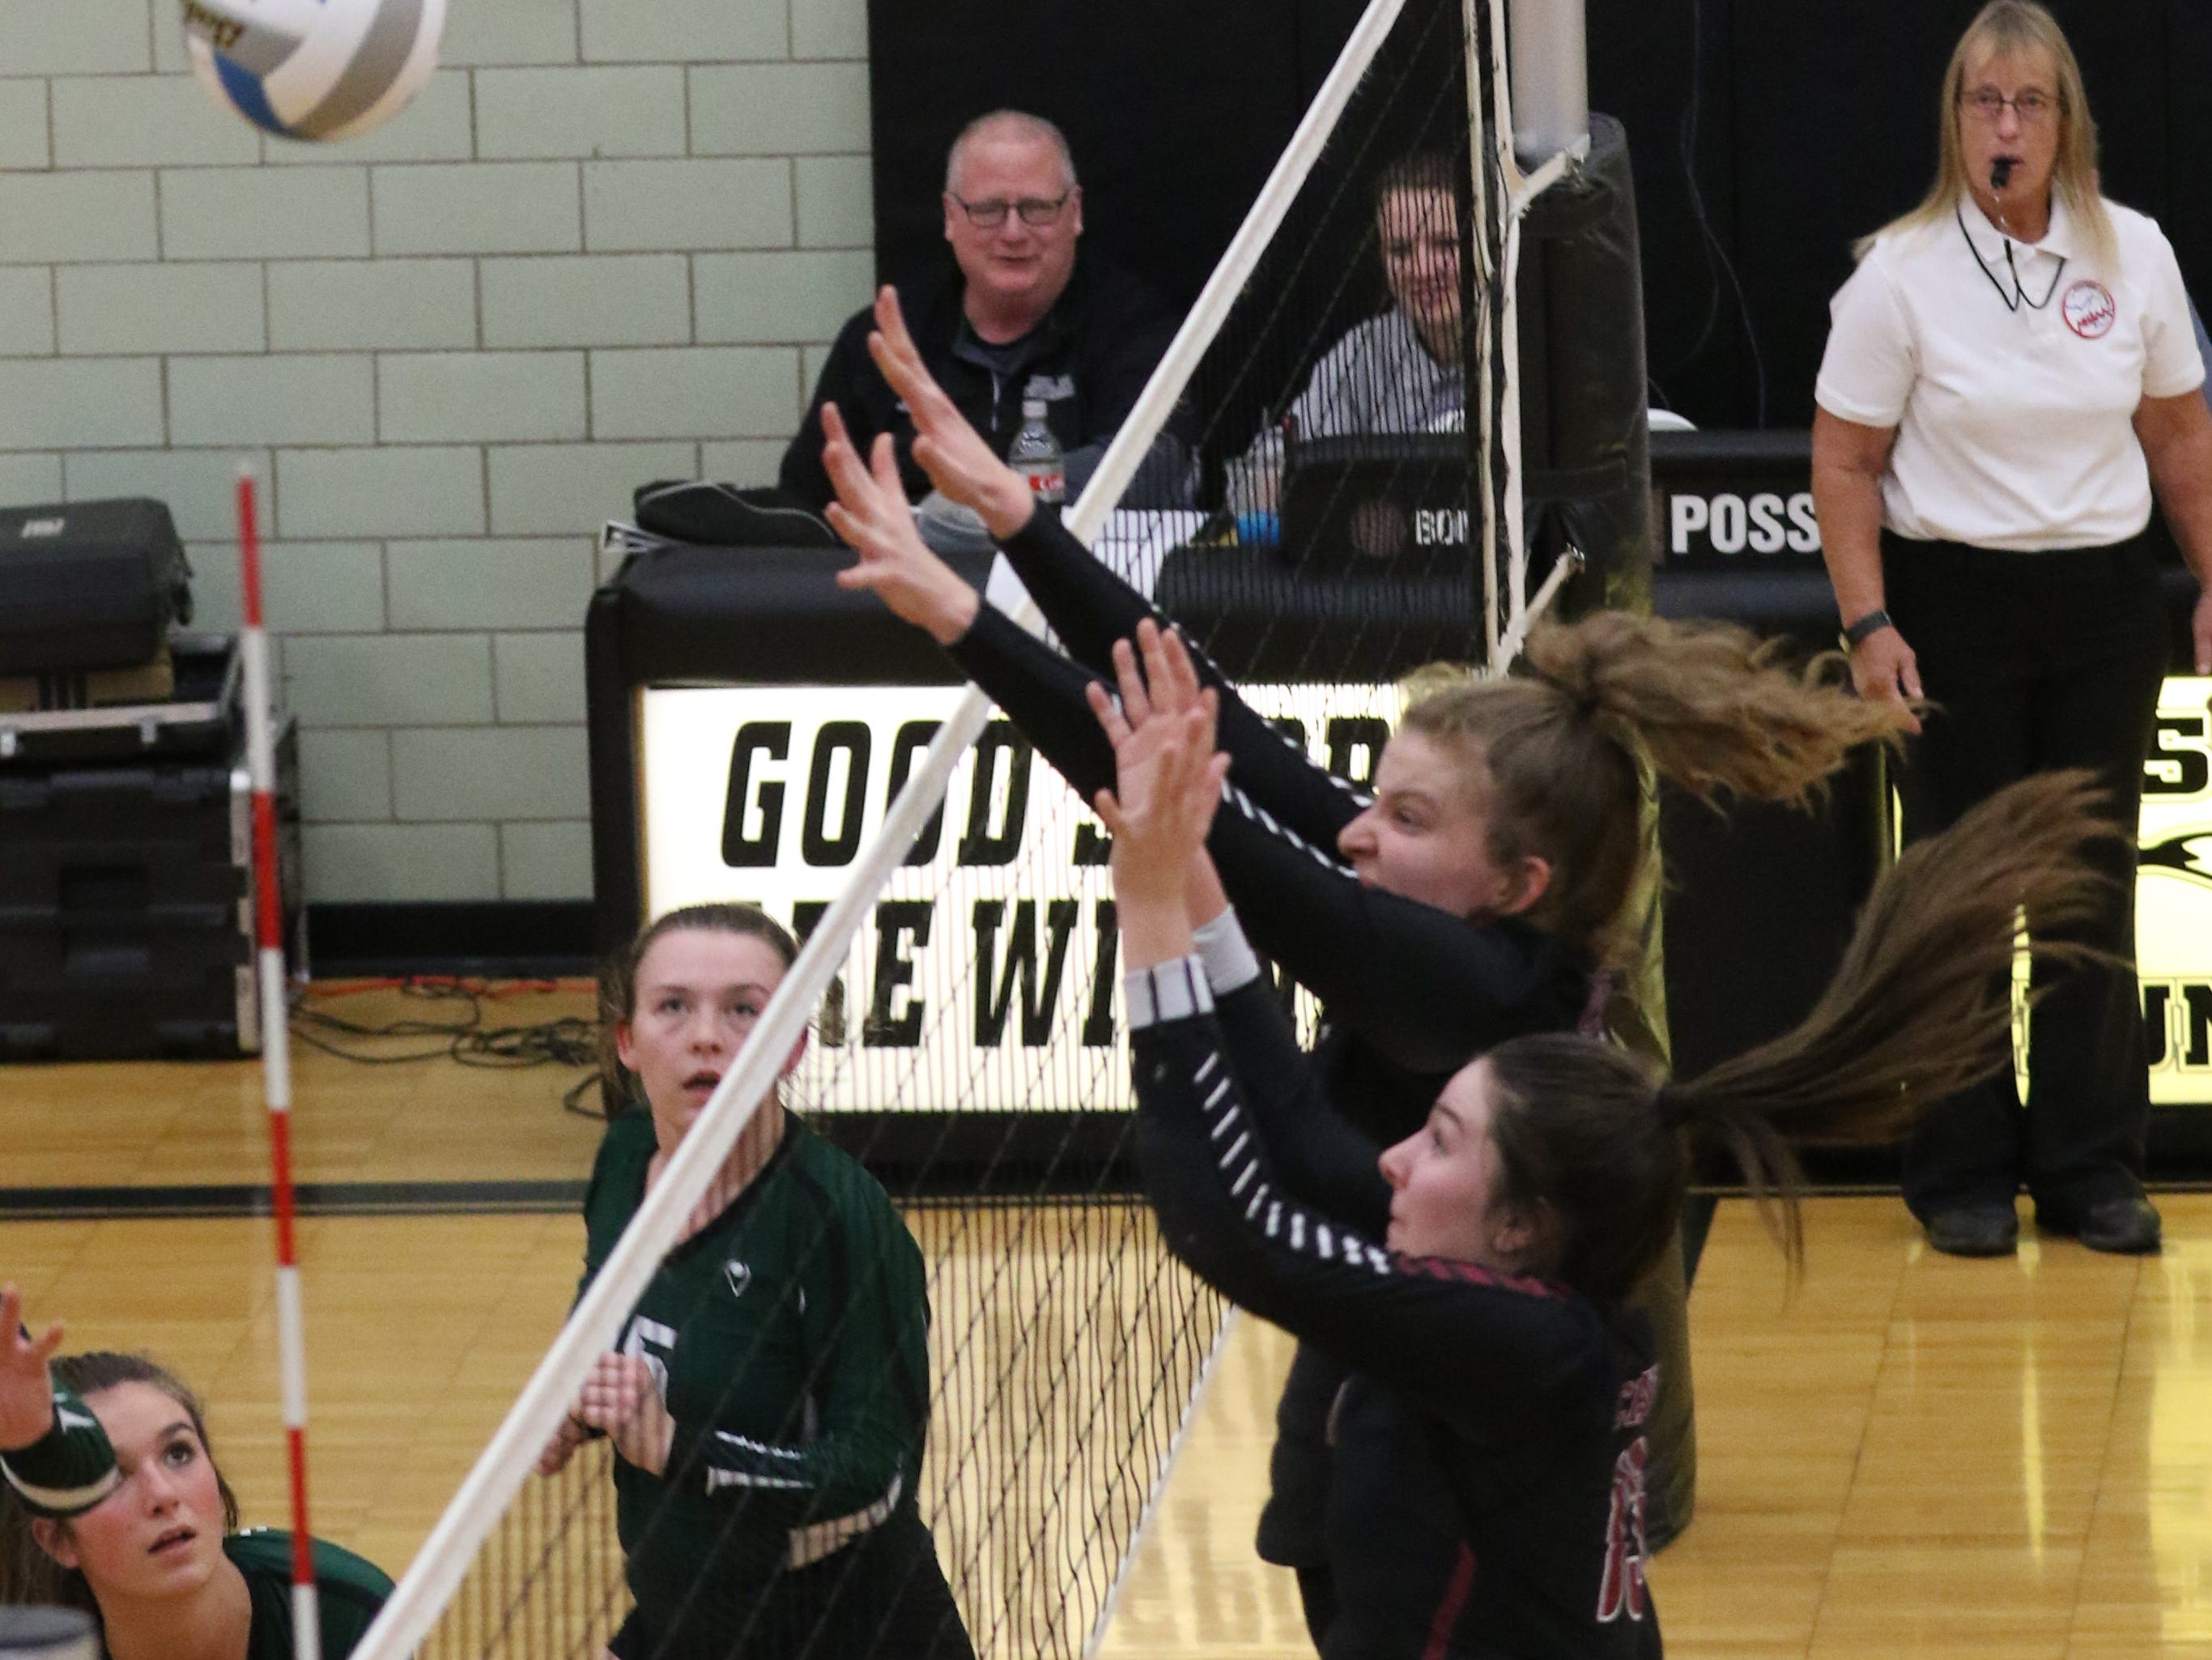 Jumping up in unison at the net are Livonia Churchill's Mary Claire Yost (foreground) and Summer Clark.